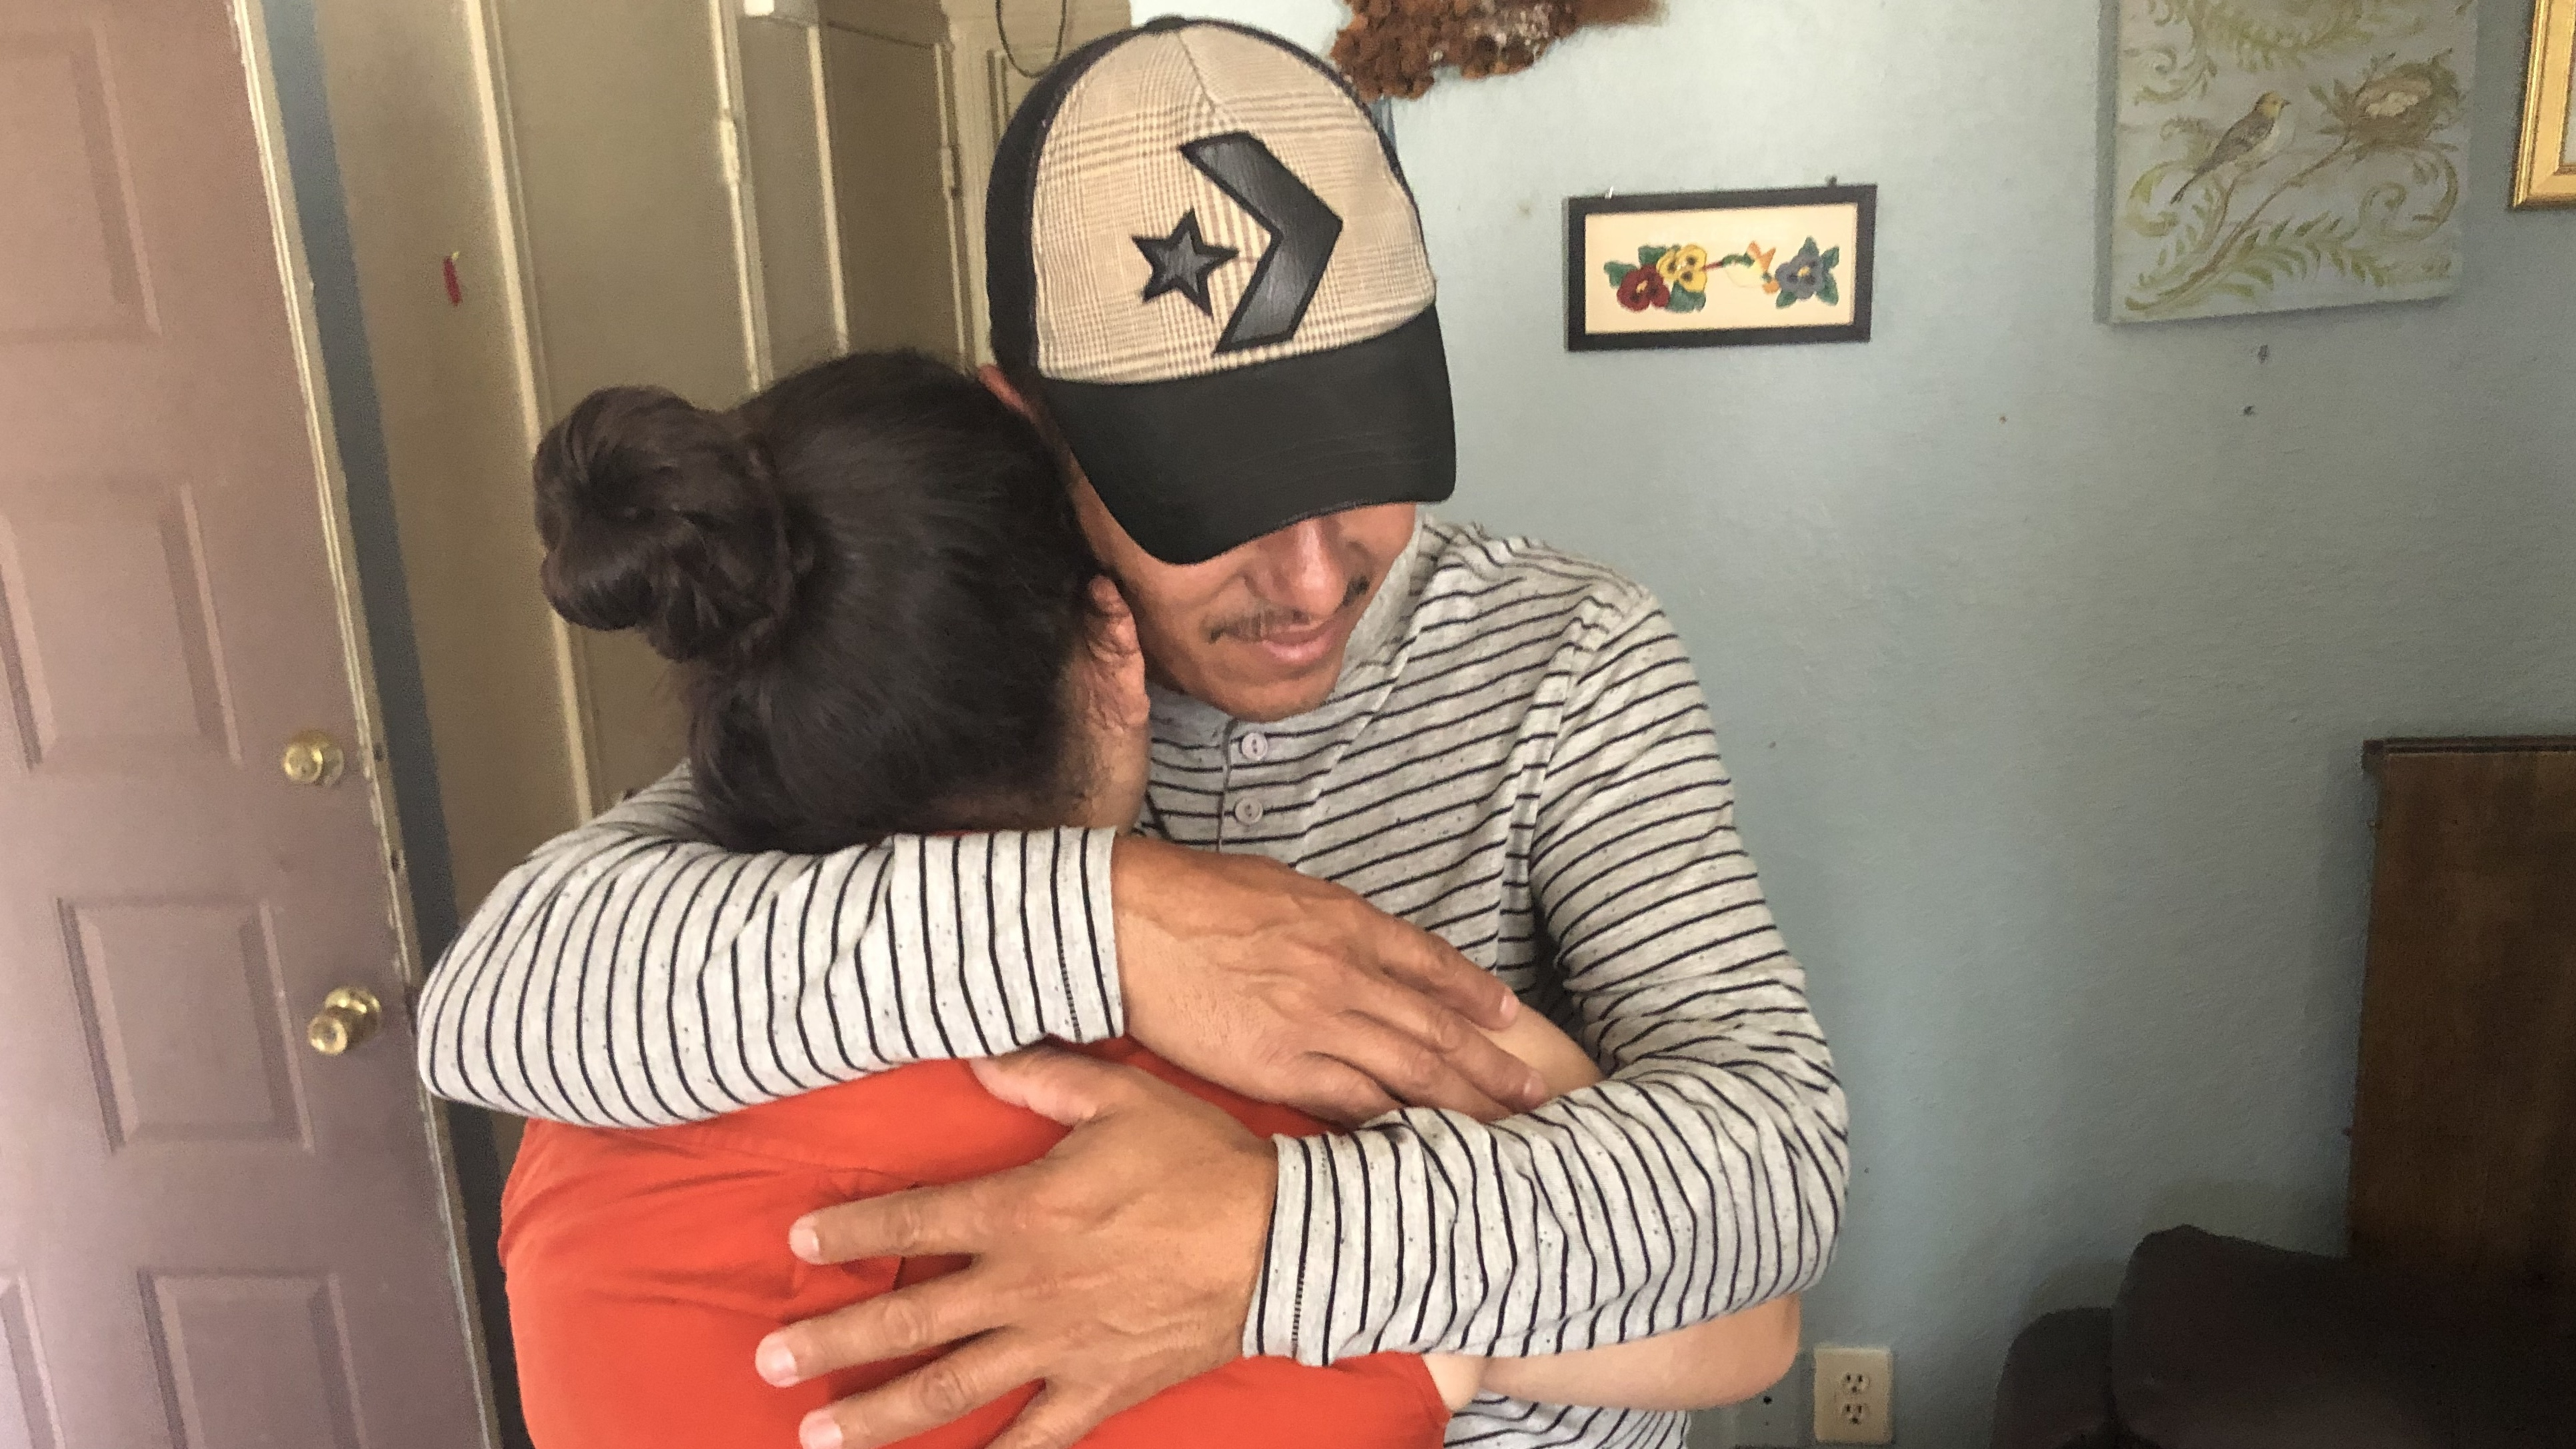 Image for A Honduran Father Is Reunited With His Daughter, 10 Months After Being Separated Article